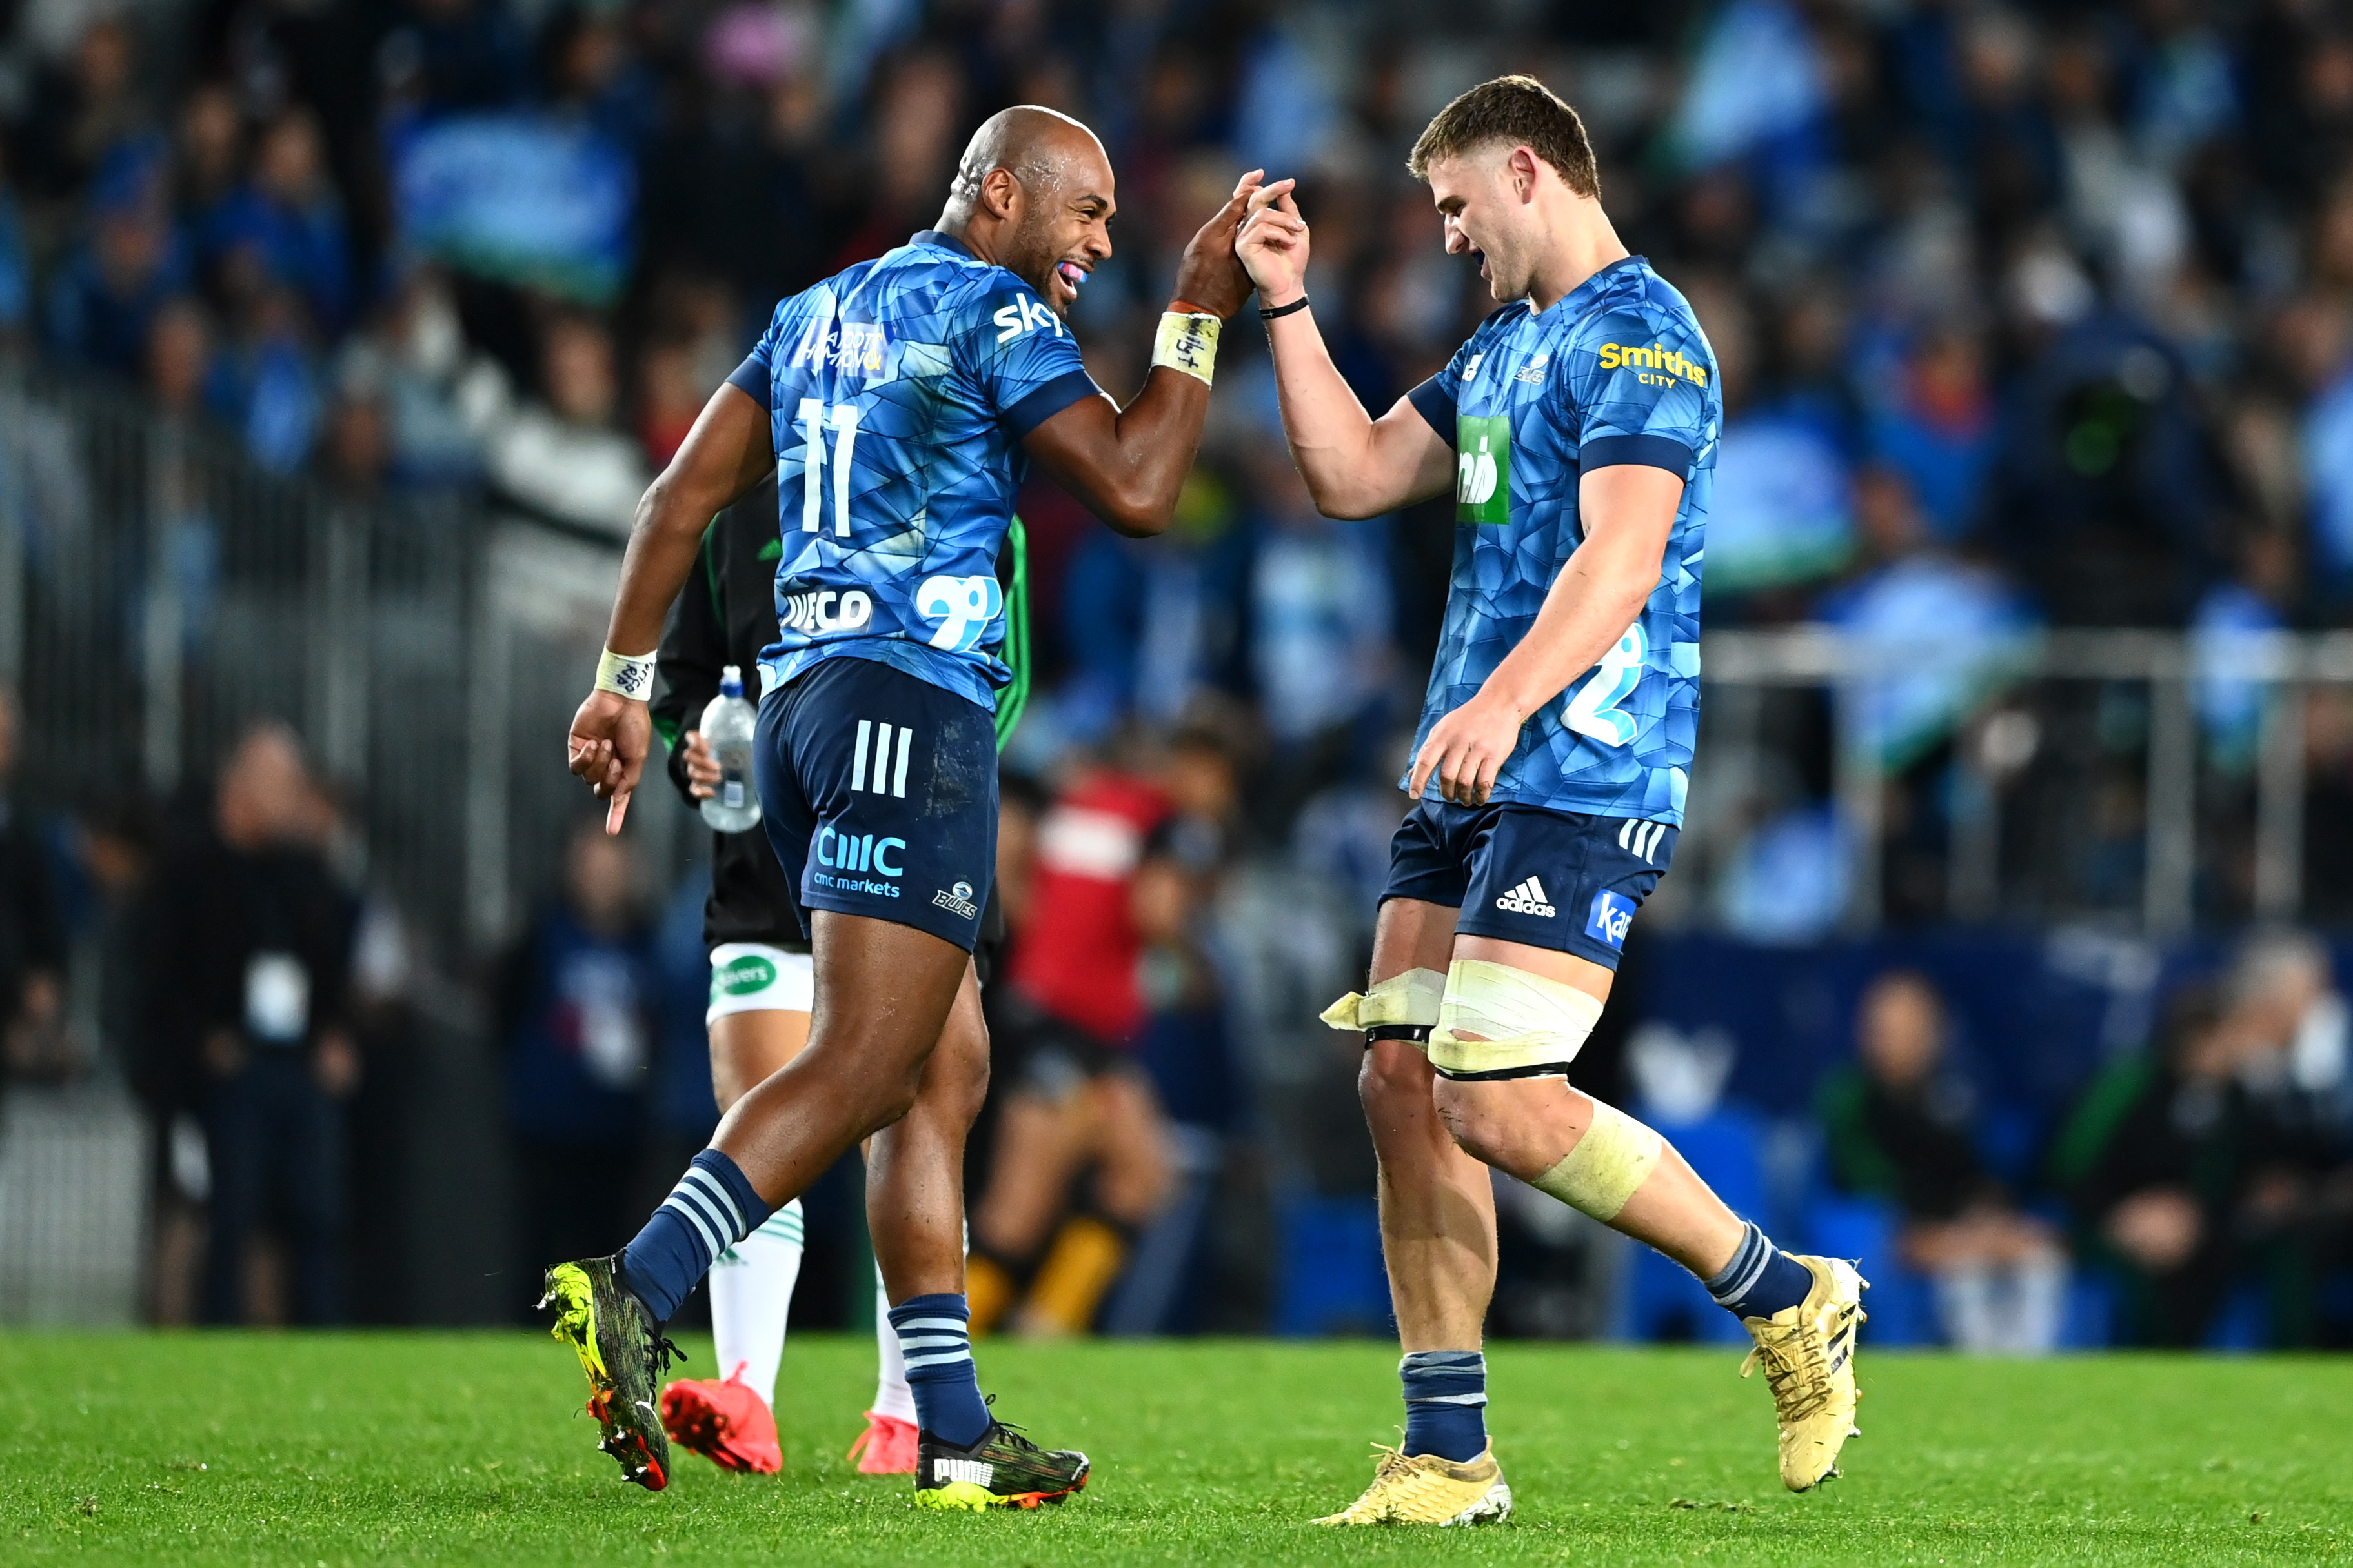 The Blues enter the Final as favourites after finishing top of Super Rugby Trans-Tasman. Photo: Getty Images